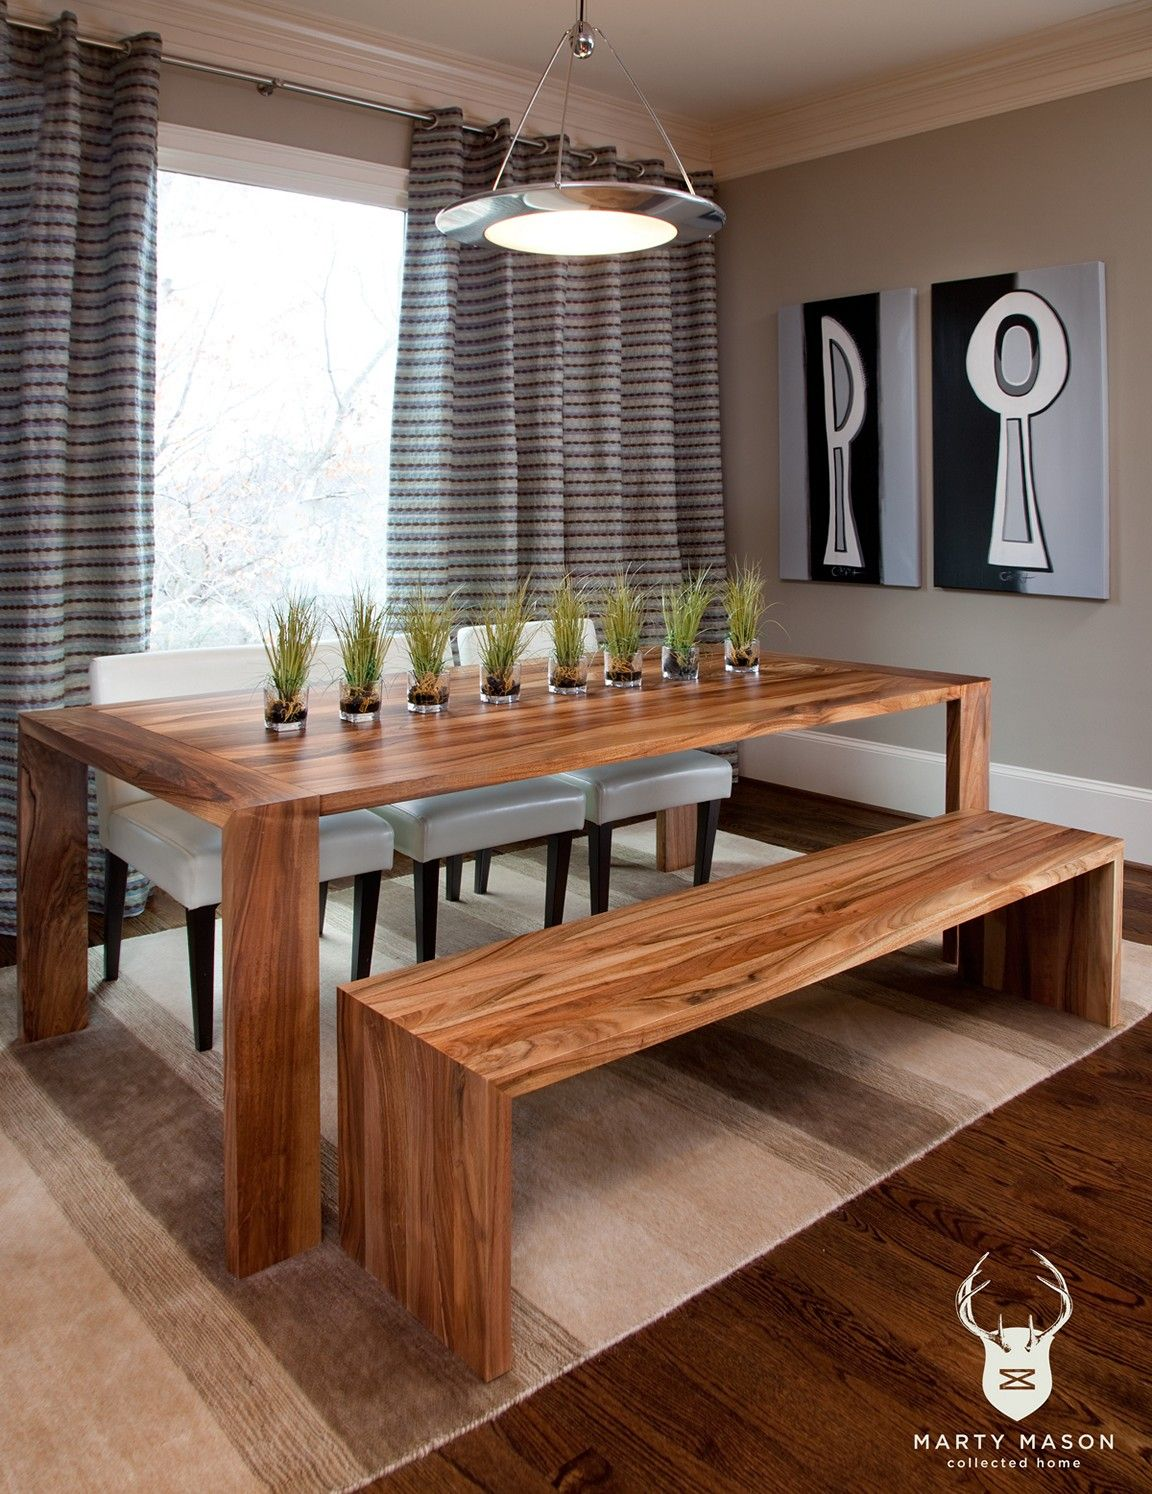 Diy Dining Room Table Bench Diy Dining Table Diy Dining Room